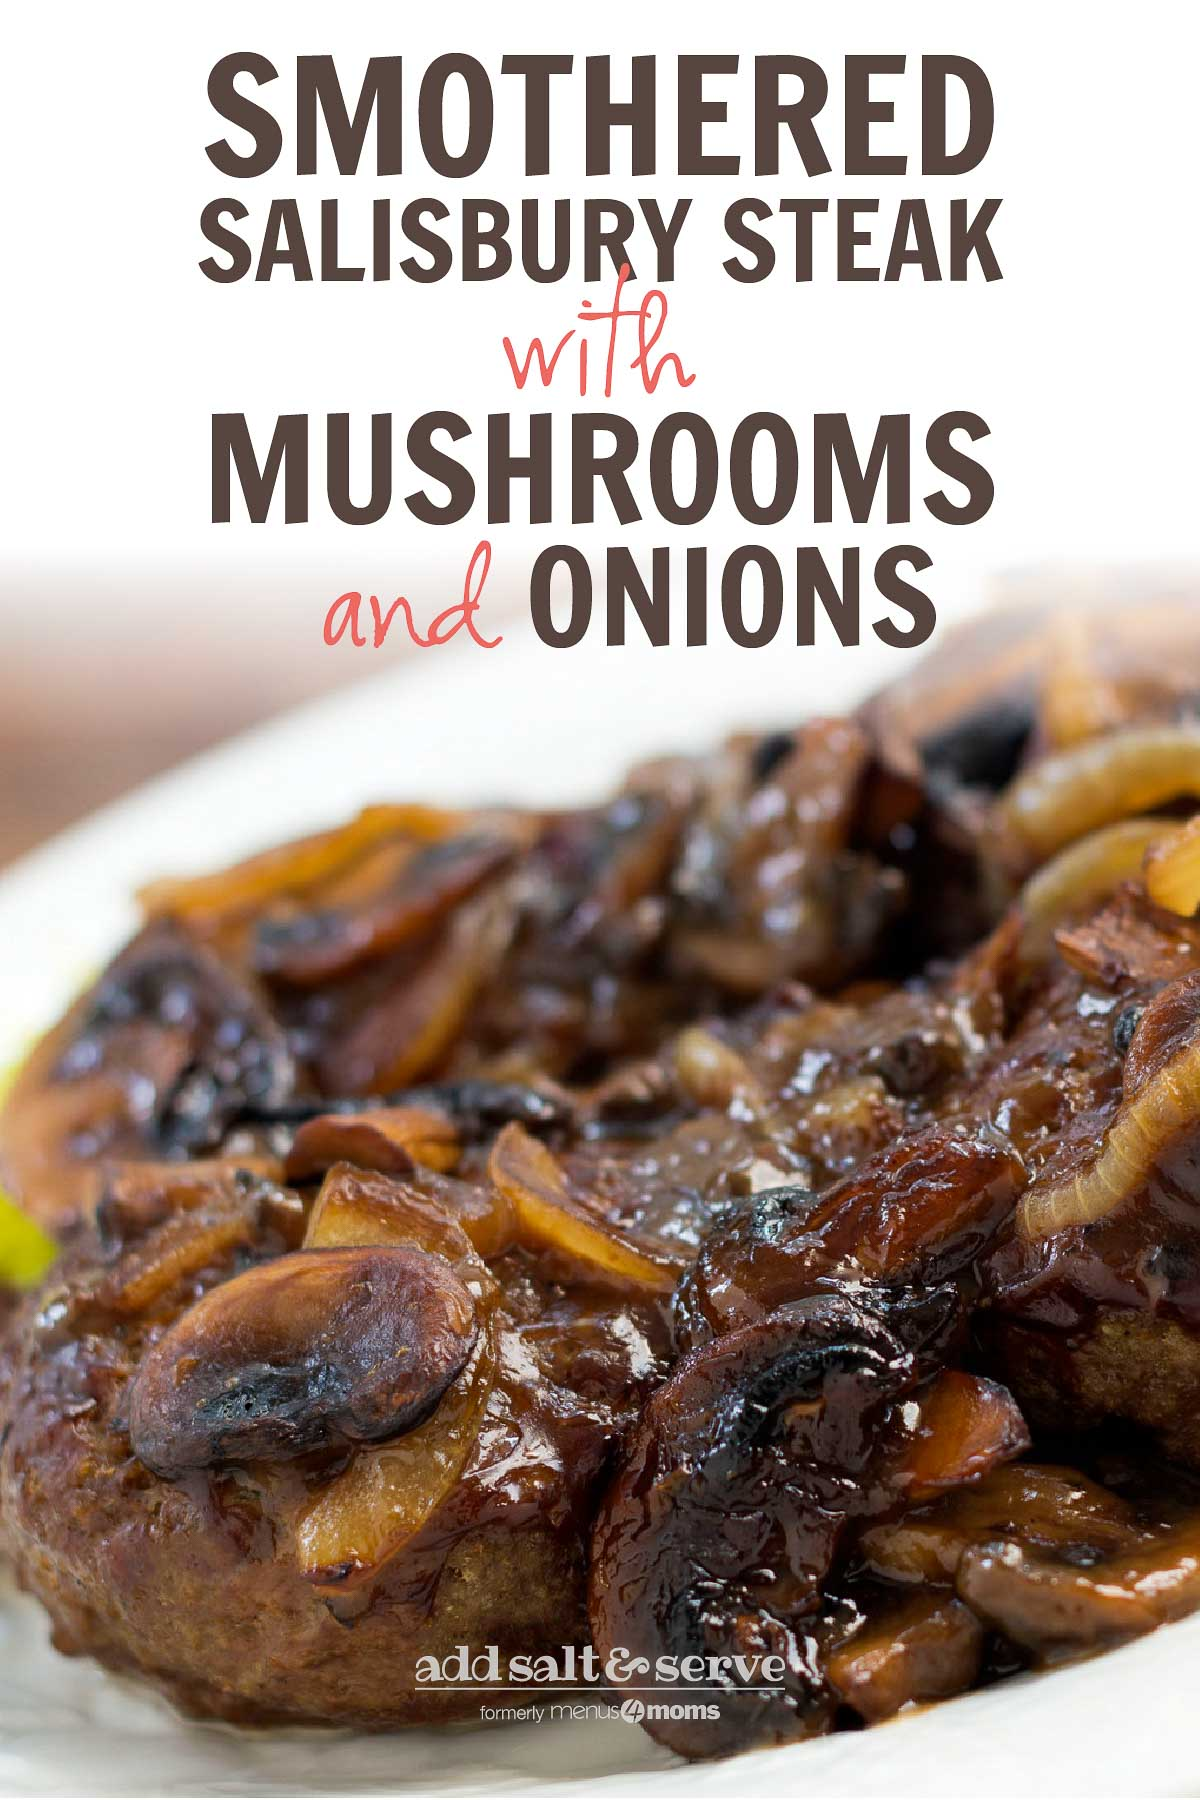 Hamburger patty covered with sliced mushrooms and onions and gravy with text Smothered Salisbury Steak with Mushrooms and Onions - Add Salt & Serve logo